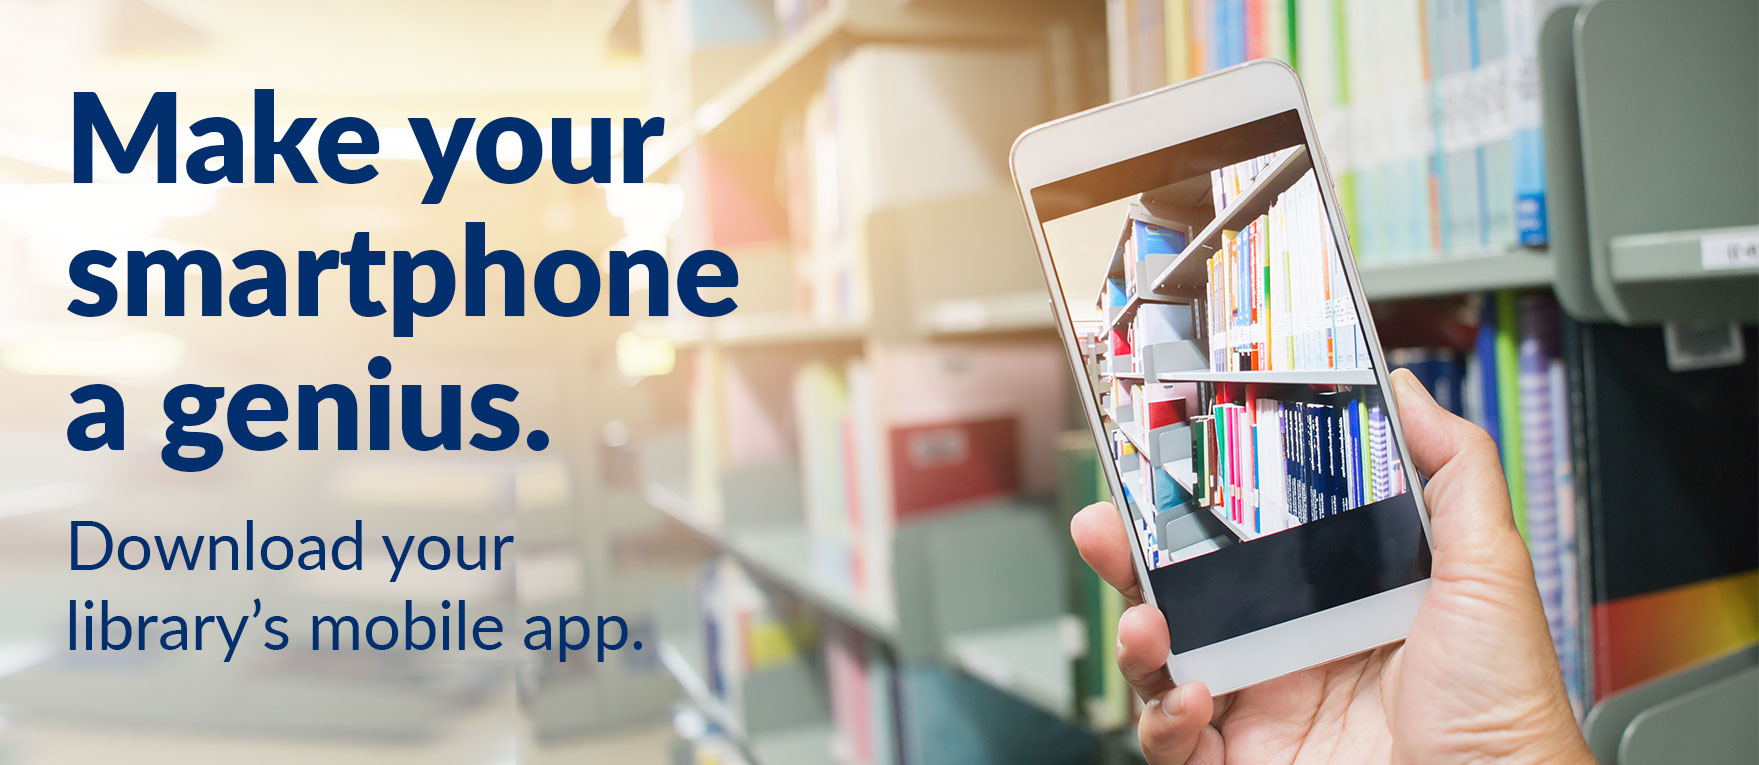 Make your smartphone a genius. Download you library's mobile app.